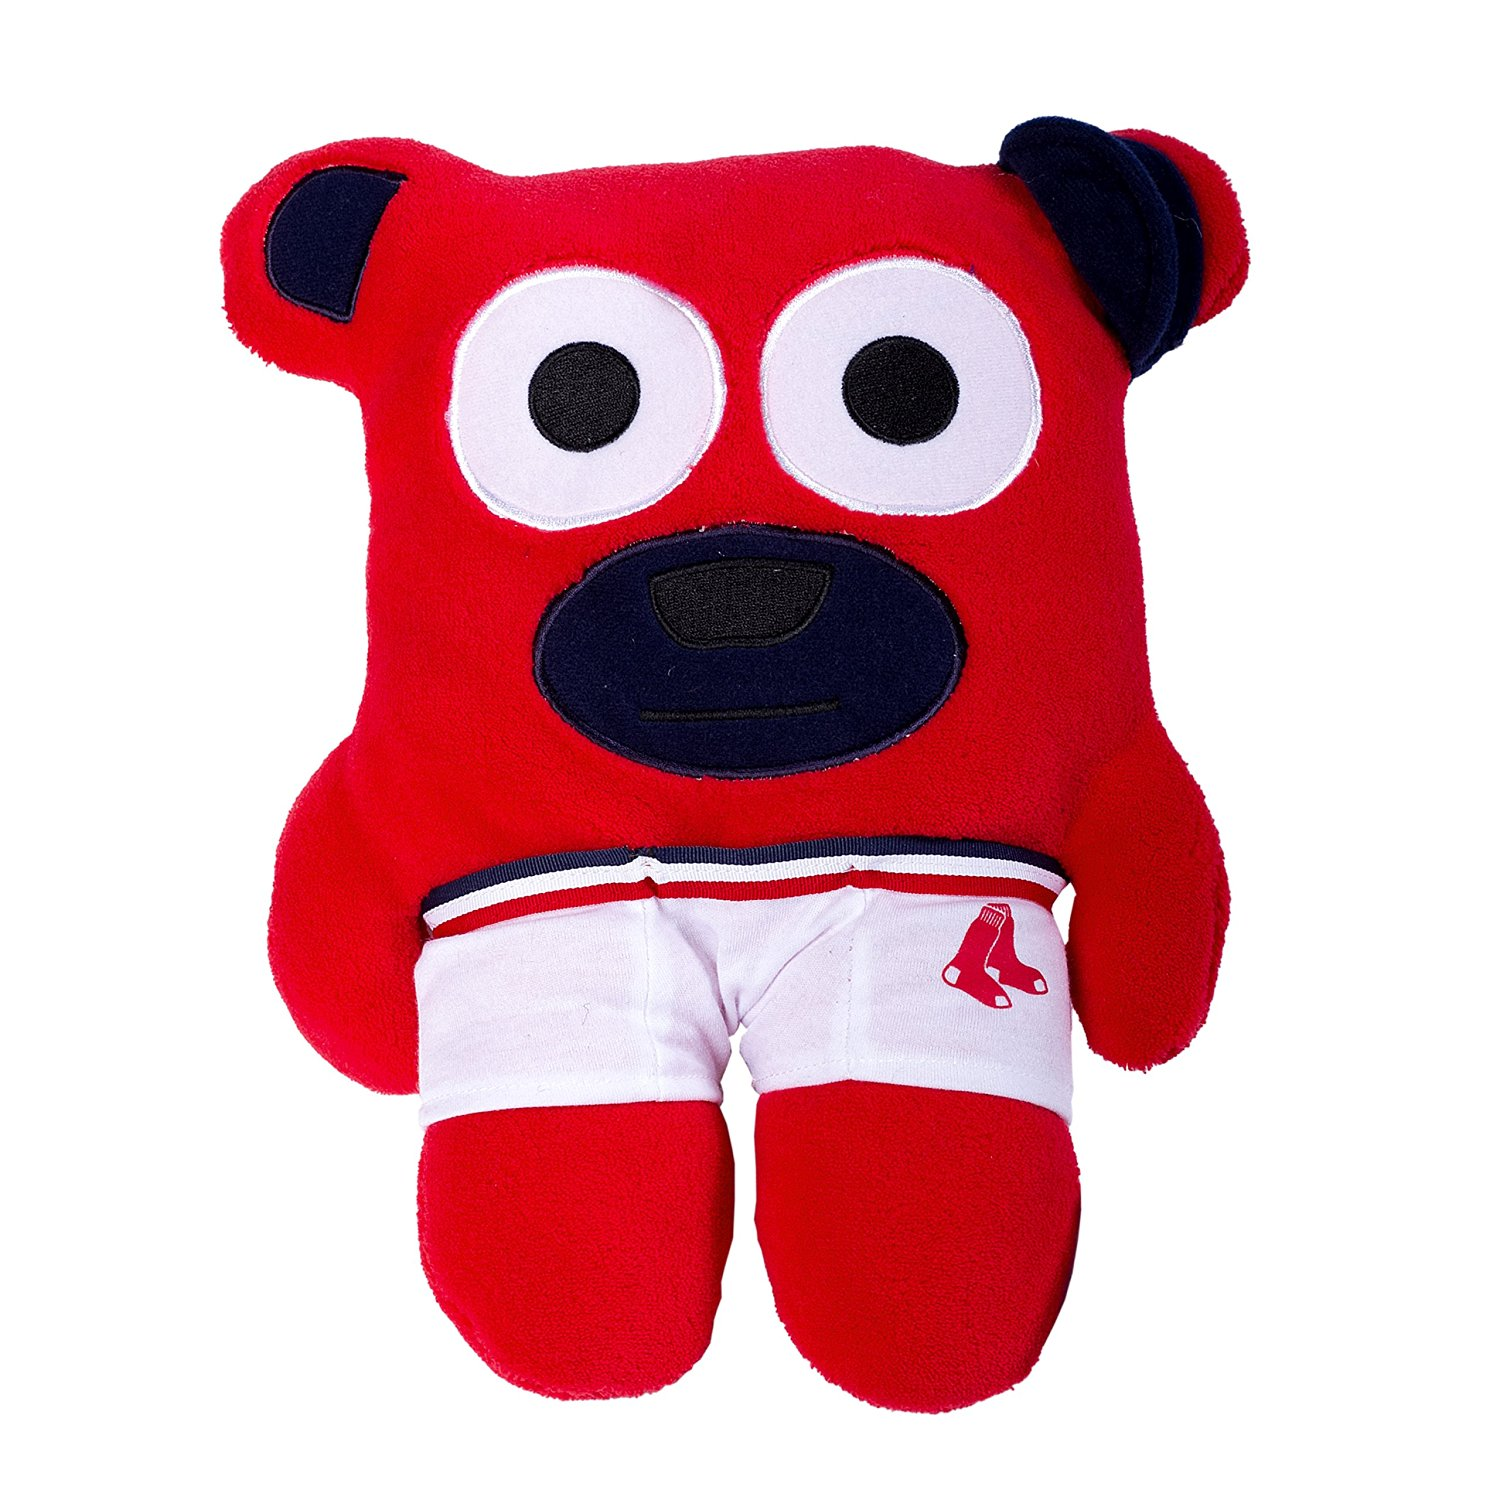 Buy Mlb Boston Red Sox Bear In Underwear Plush Toy Red Small In